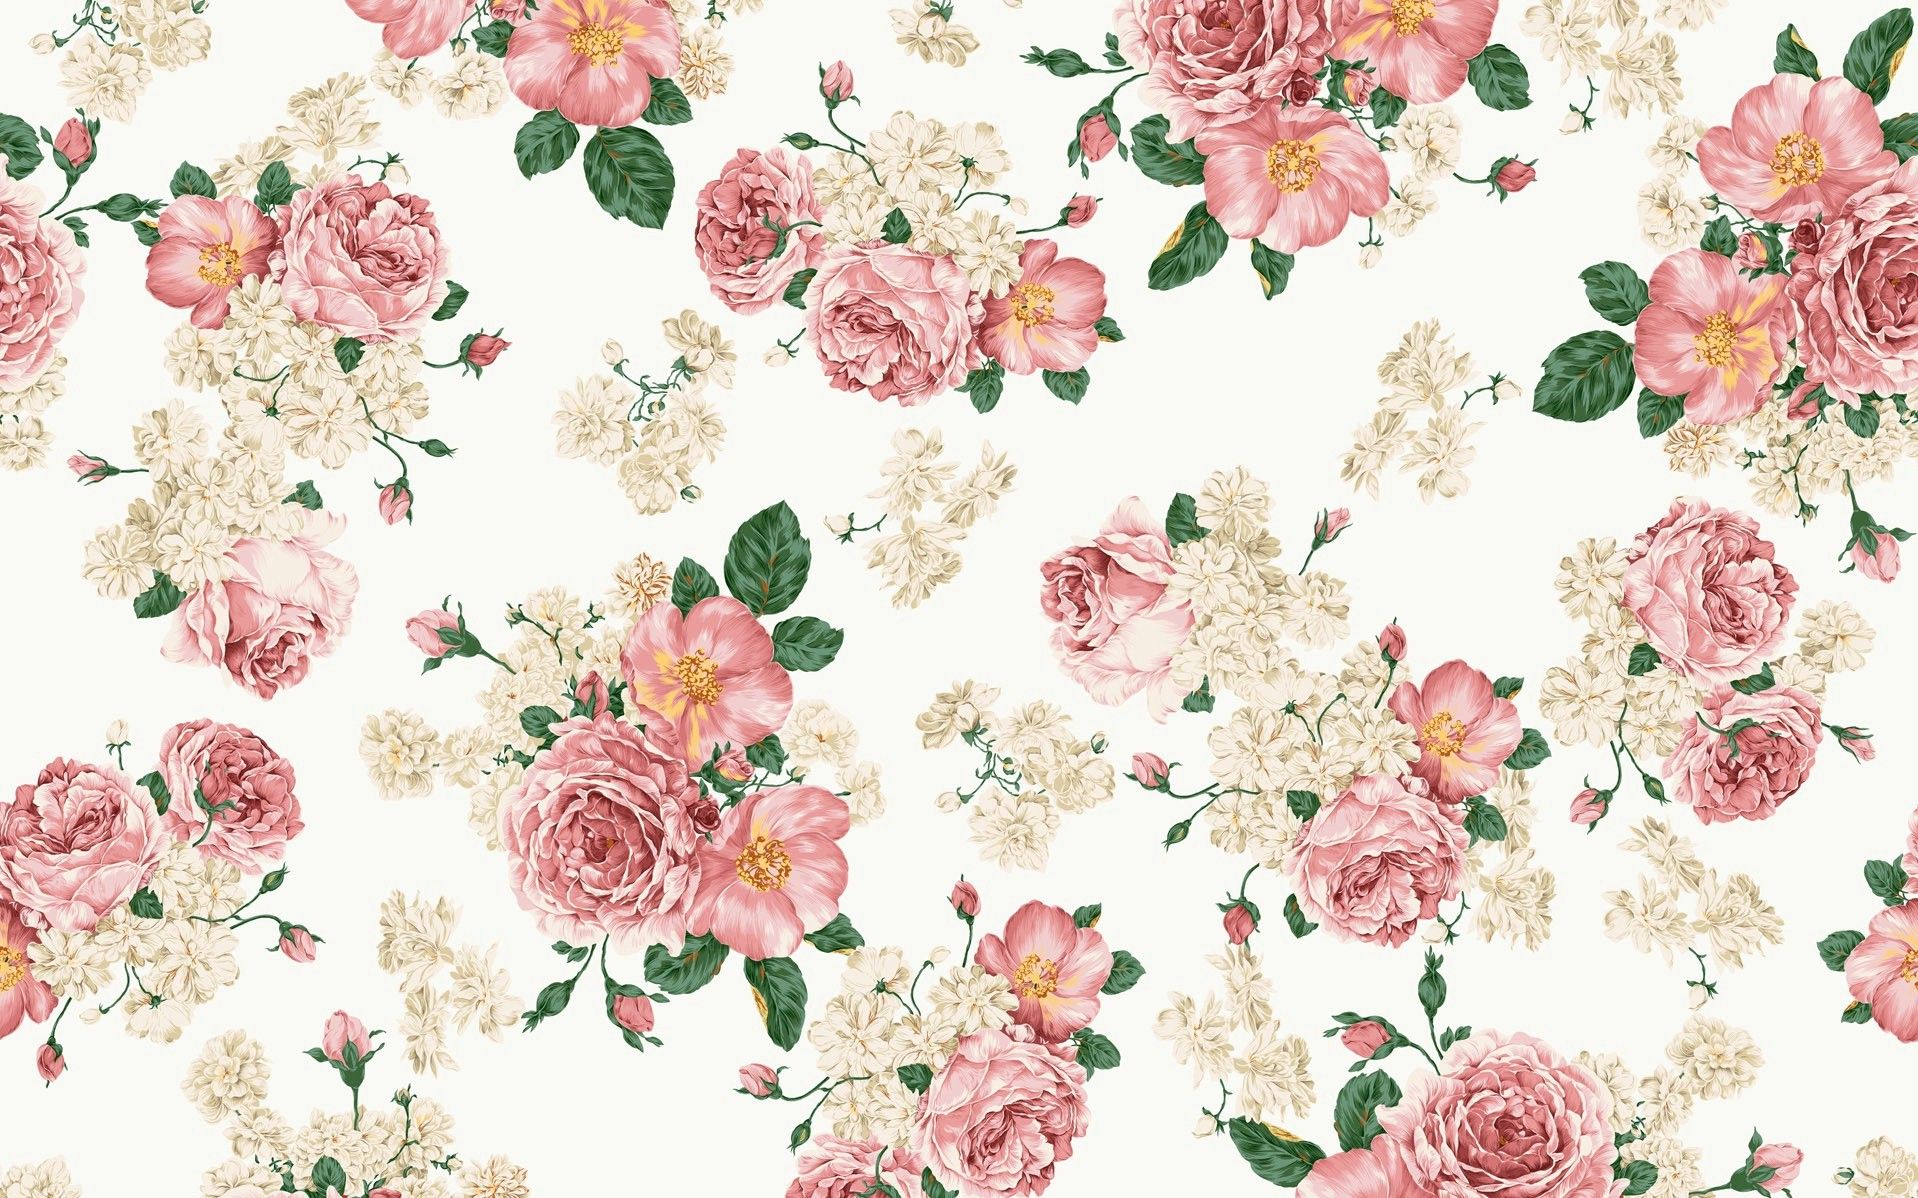 Vintage Flower Tumblr Wallpapers Images On Wallpaper 1080p Hd Vintage Flowers Wallpaper Vintage Floral Wallpapers Flower Wallpaper